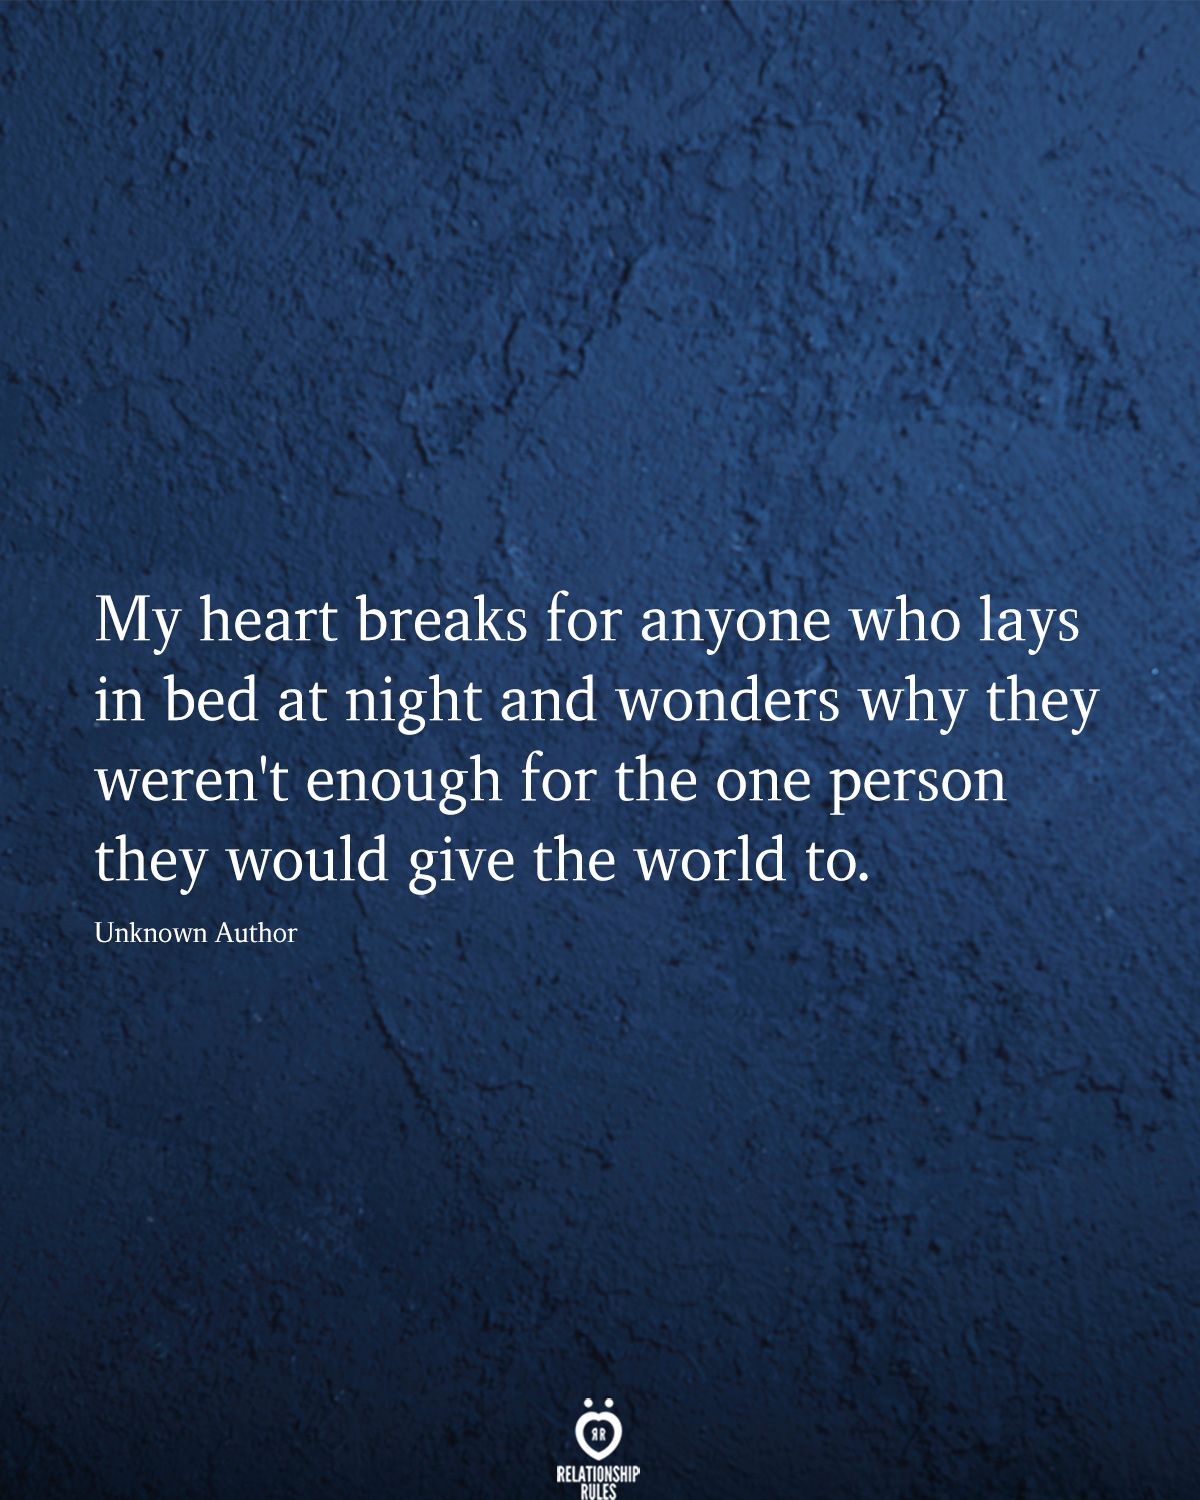 My Heart Breaks For Anyone Who Lays In bed At Night And